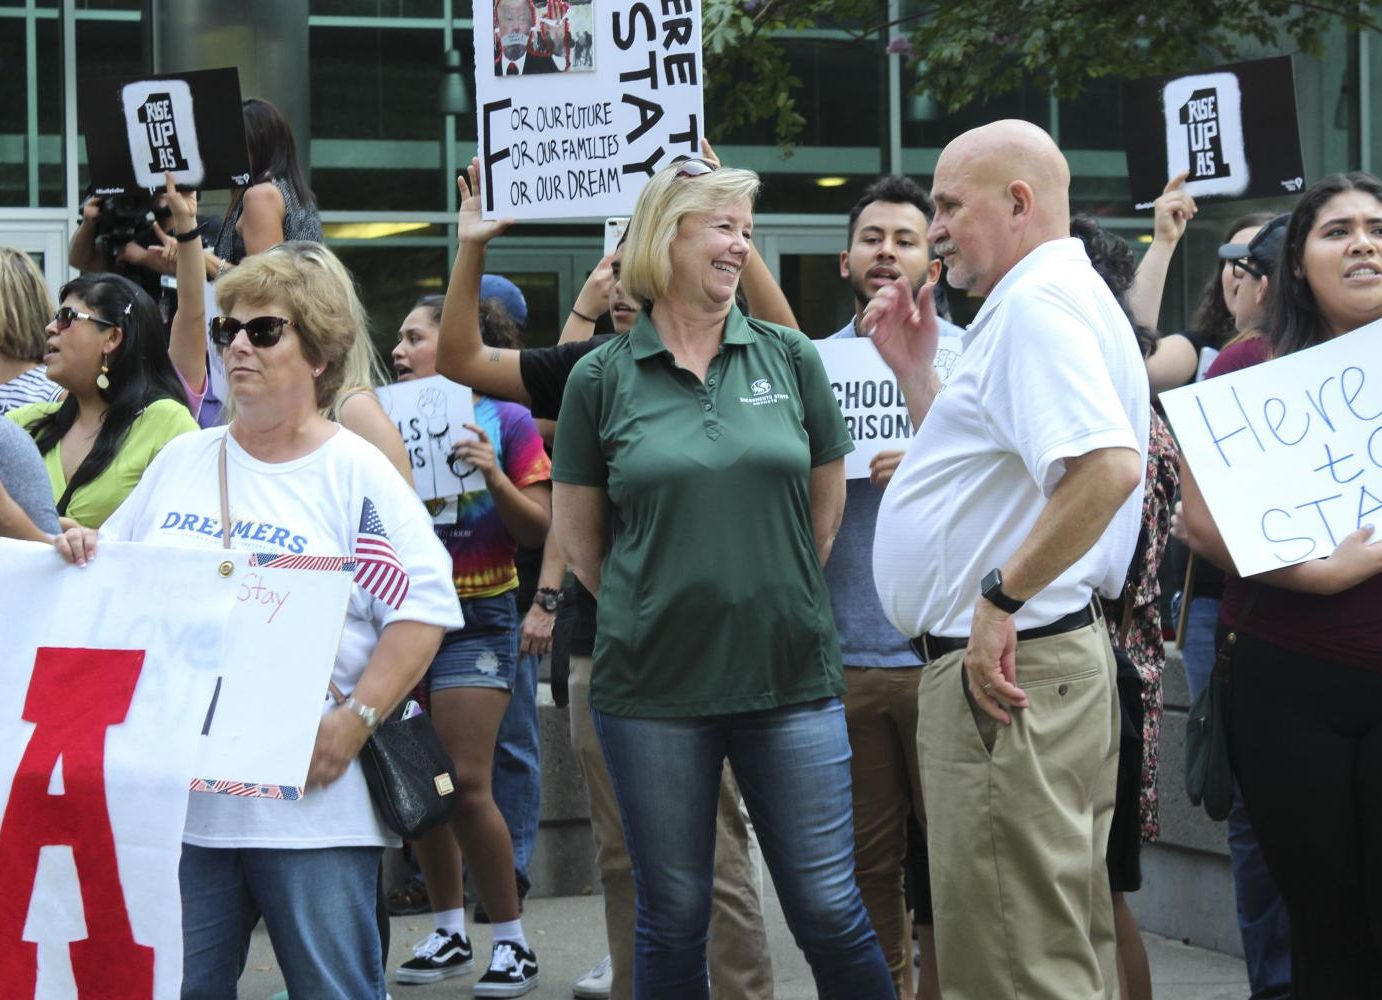 President Robert Nelsen and his wife Jody show their support for DACA recipients at the march in downtown Sacramento on Tuesday. (Photo by Claire Morgan)